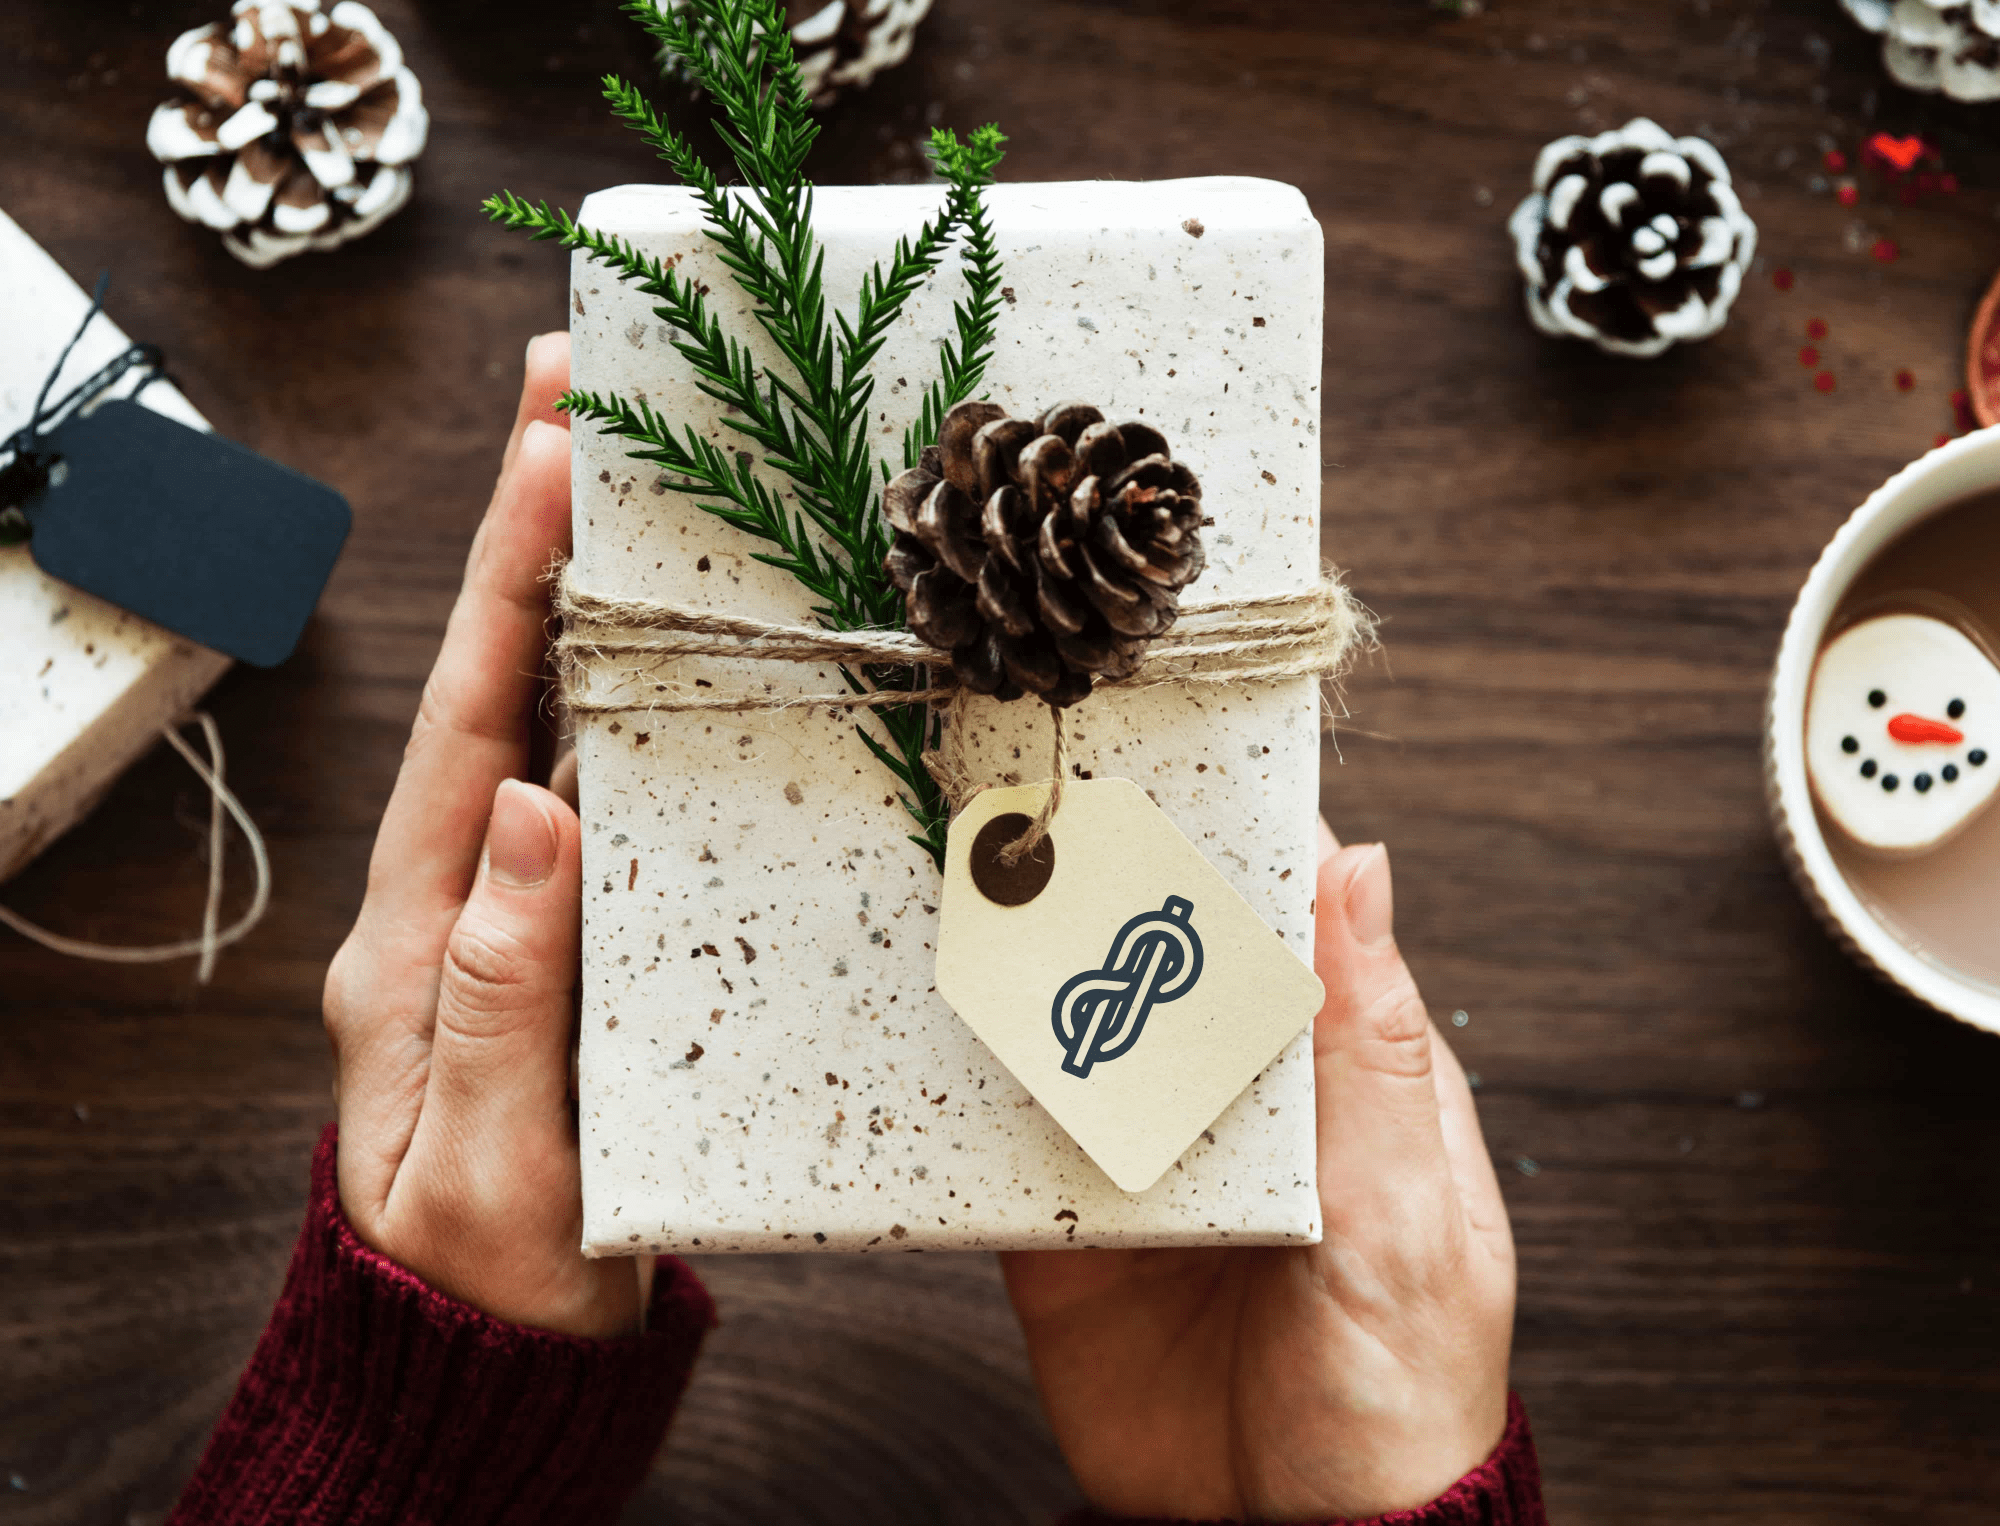 Gift wrapped in marble speckled paper tied with twine with a paper tag, pine tree branch and a pine cone